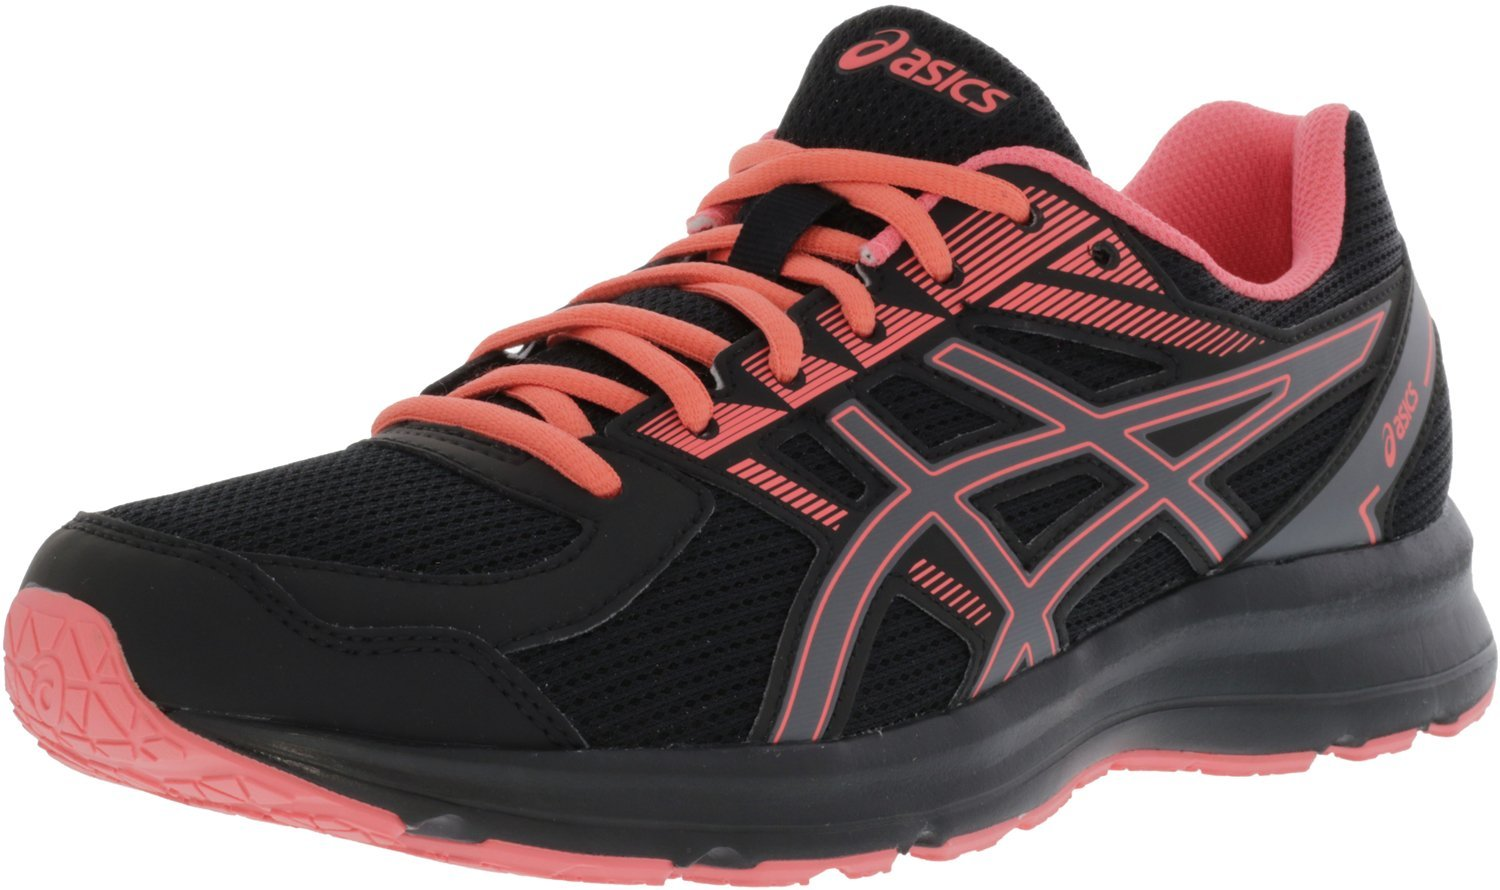 ASICS Women's Jolt Running Shoe - T7K8N.9097 (Black/Carbon/Peach - 9)